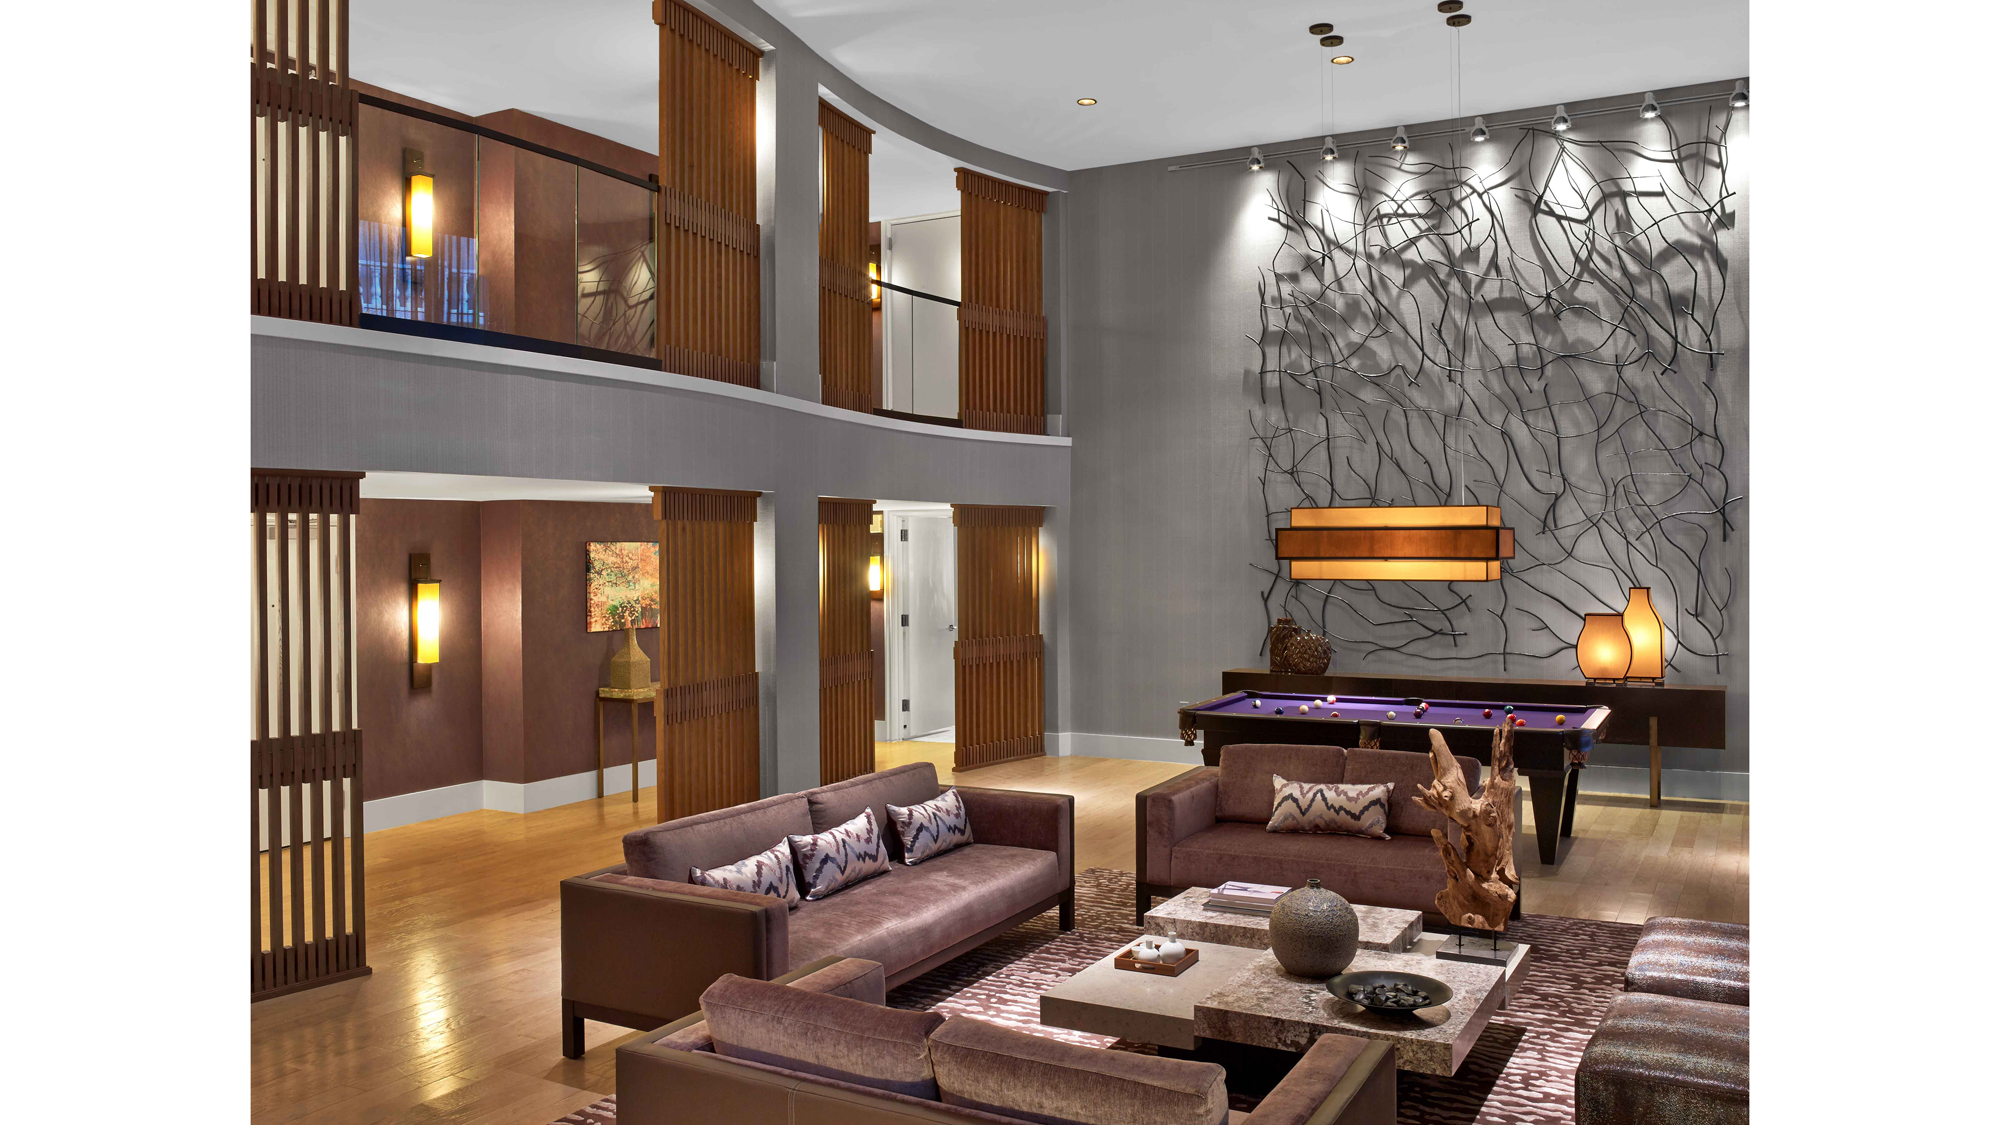 Modern hotel interior latest modern hotel interior with for Best boutique hotels vegas